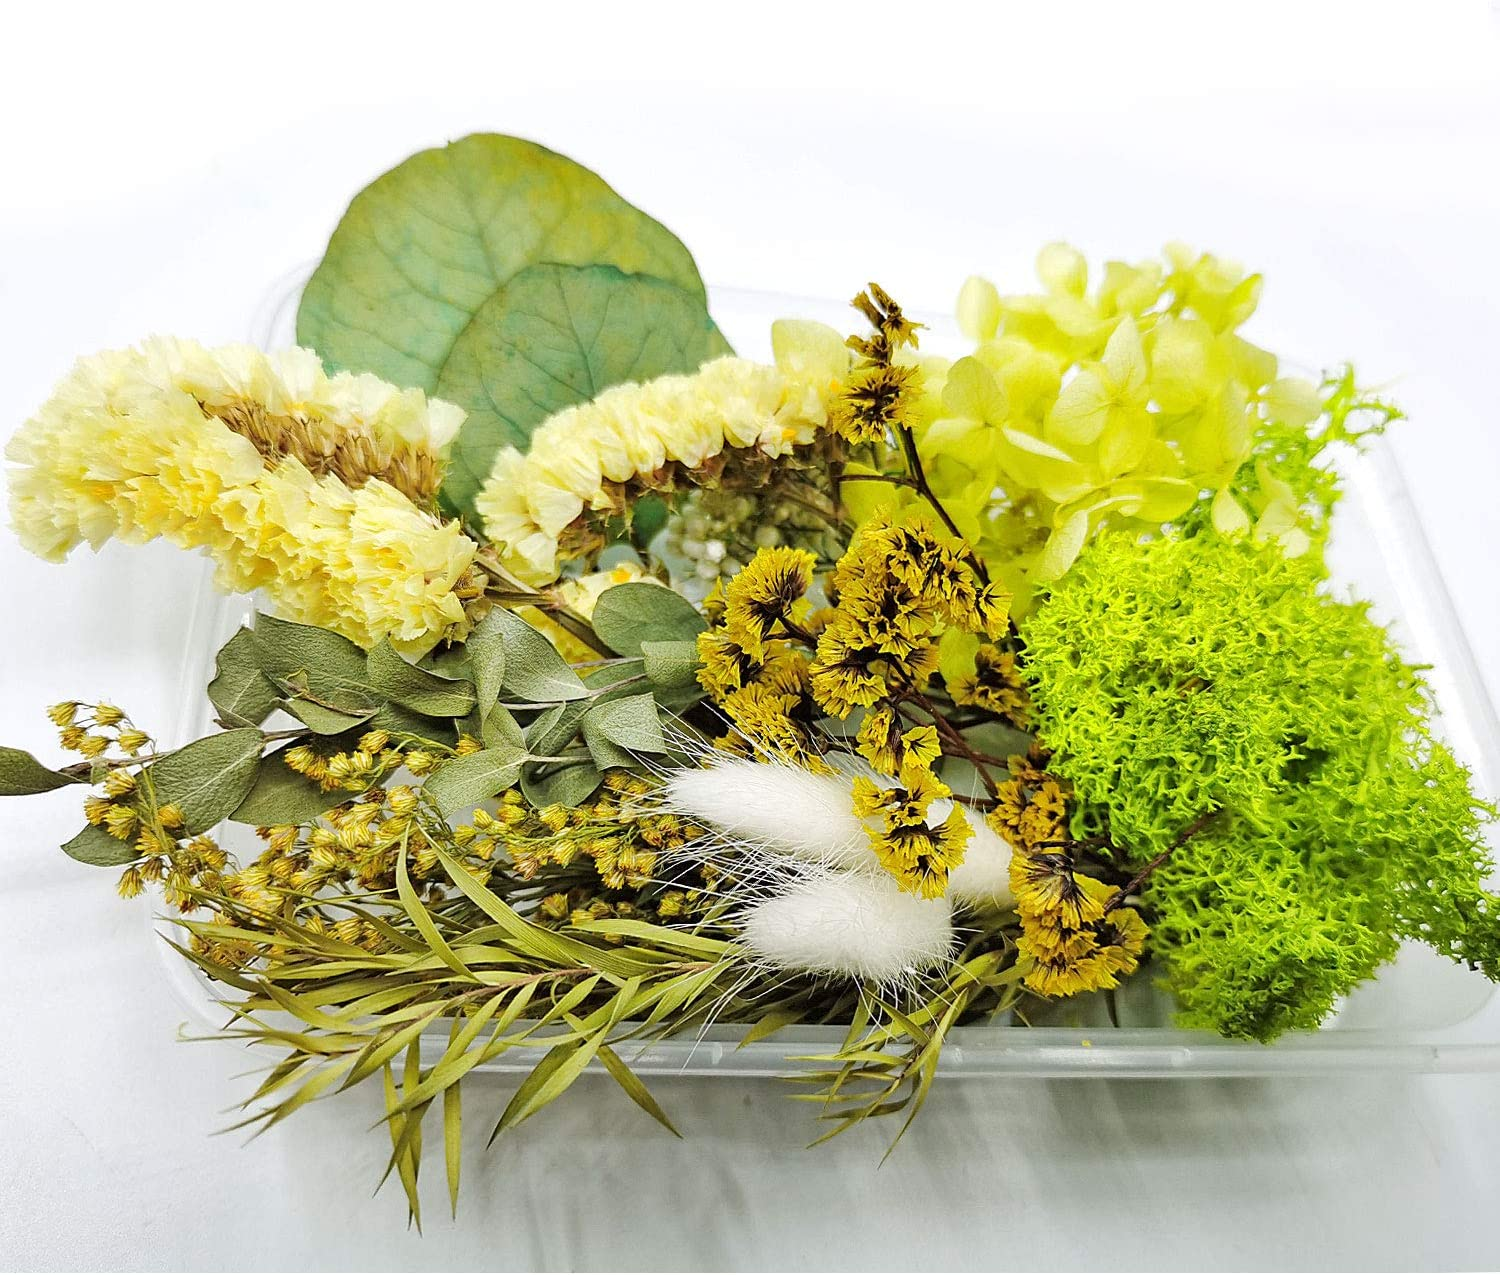 Light Yellow Dried Flowers Real Natural Dried Flowers for Art Craft Mixed Multiple Colorful Dried Flowers for Soap Candle Scrapbooking DIY Resin